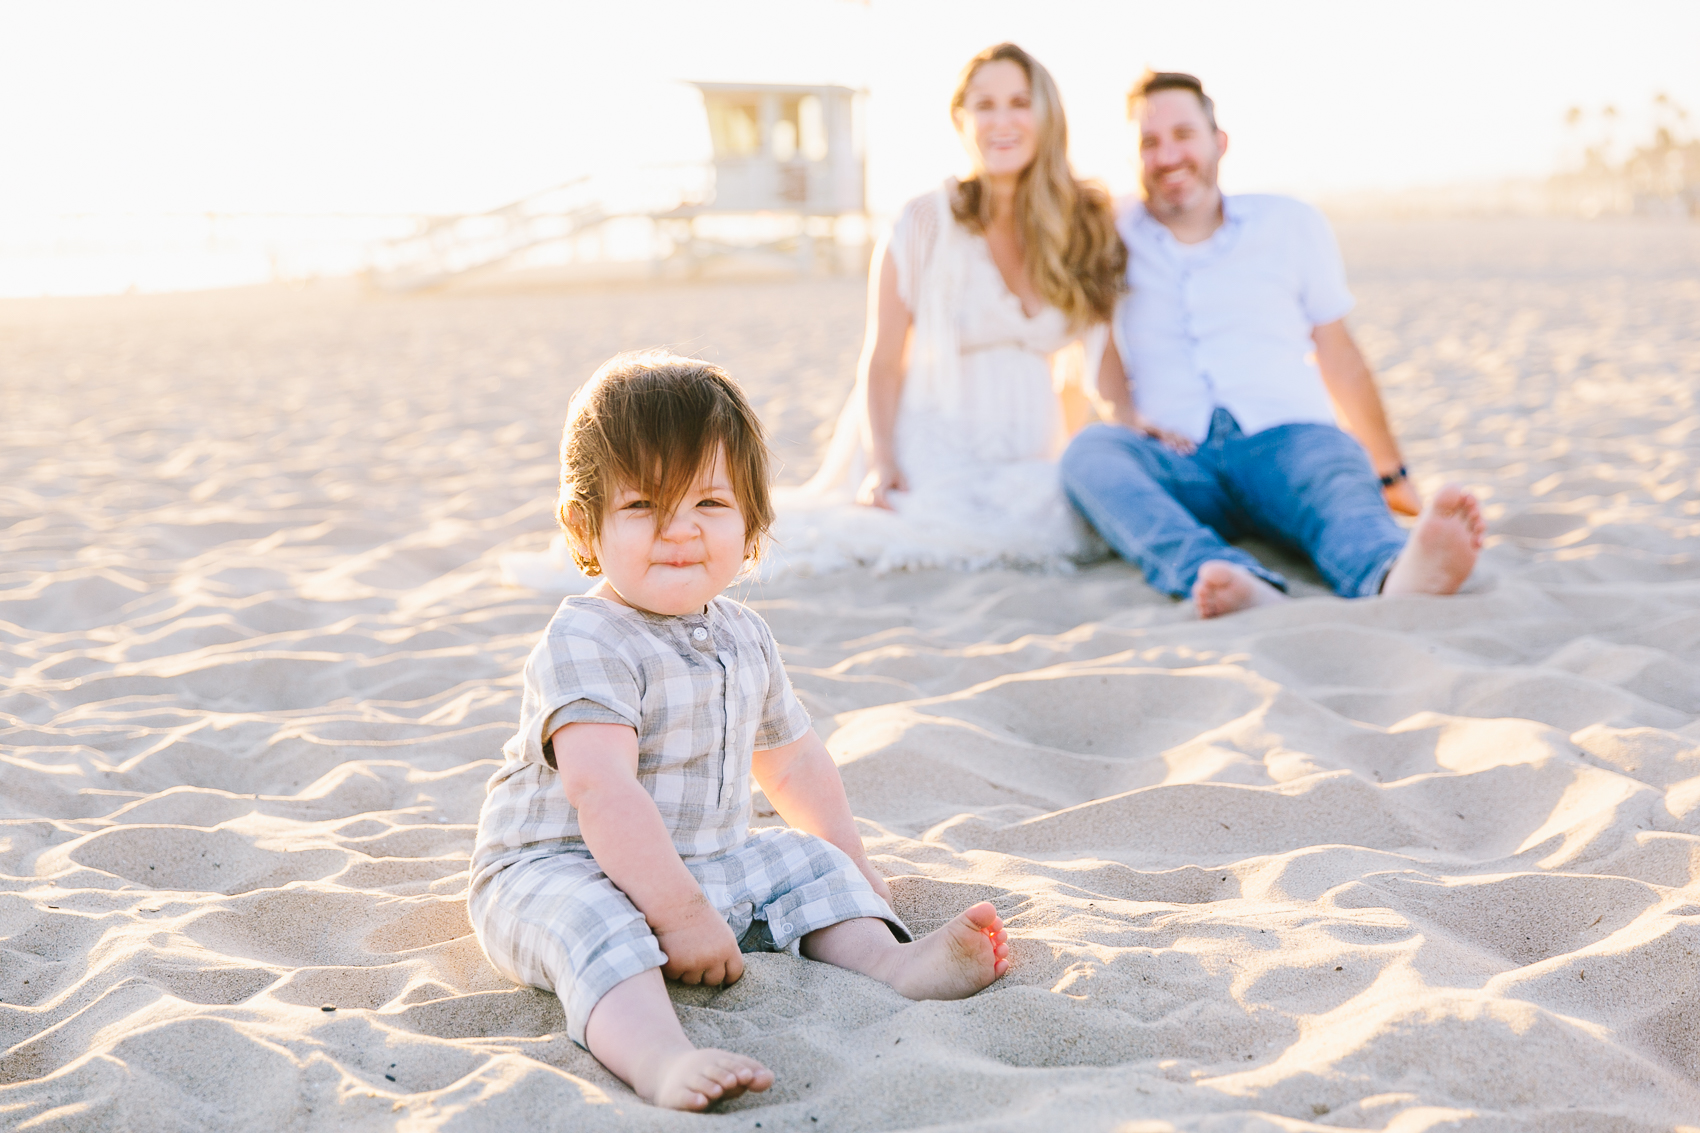 Los_Angeles_Family_Photographer_Maternity_Photos_Baby_Pregnancy_Venice_Beach_Golden_Hour-0715.jpg